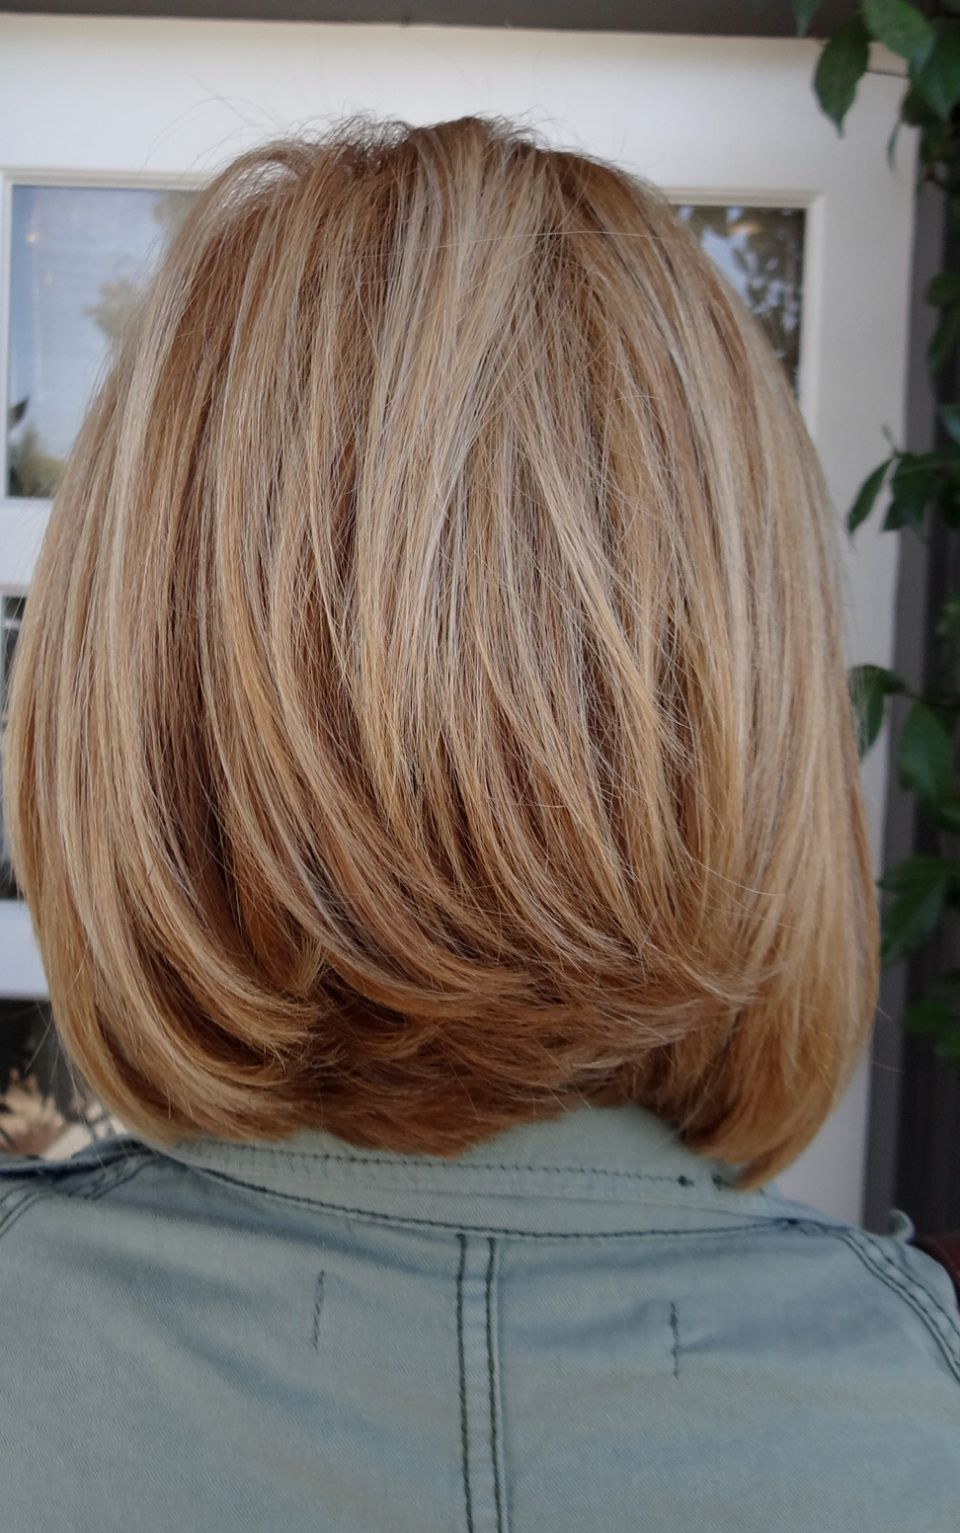 Back cut favoritos pinterest brassy hair hair style and hair cuts